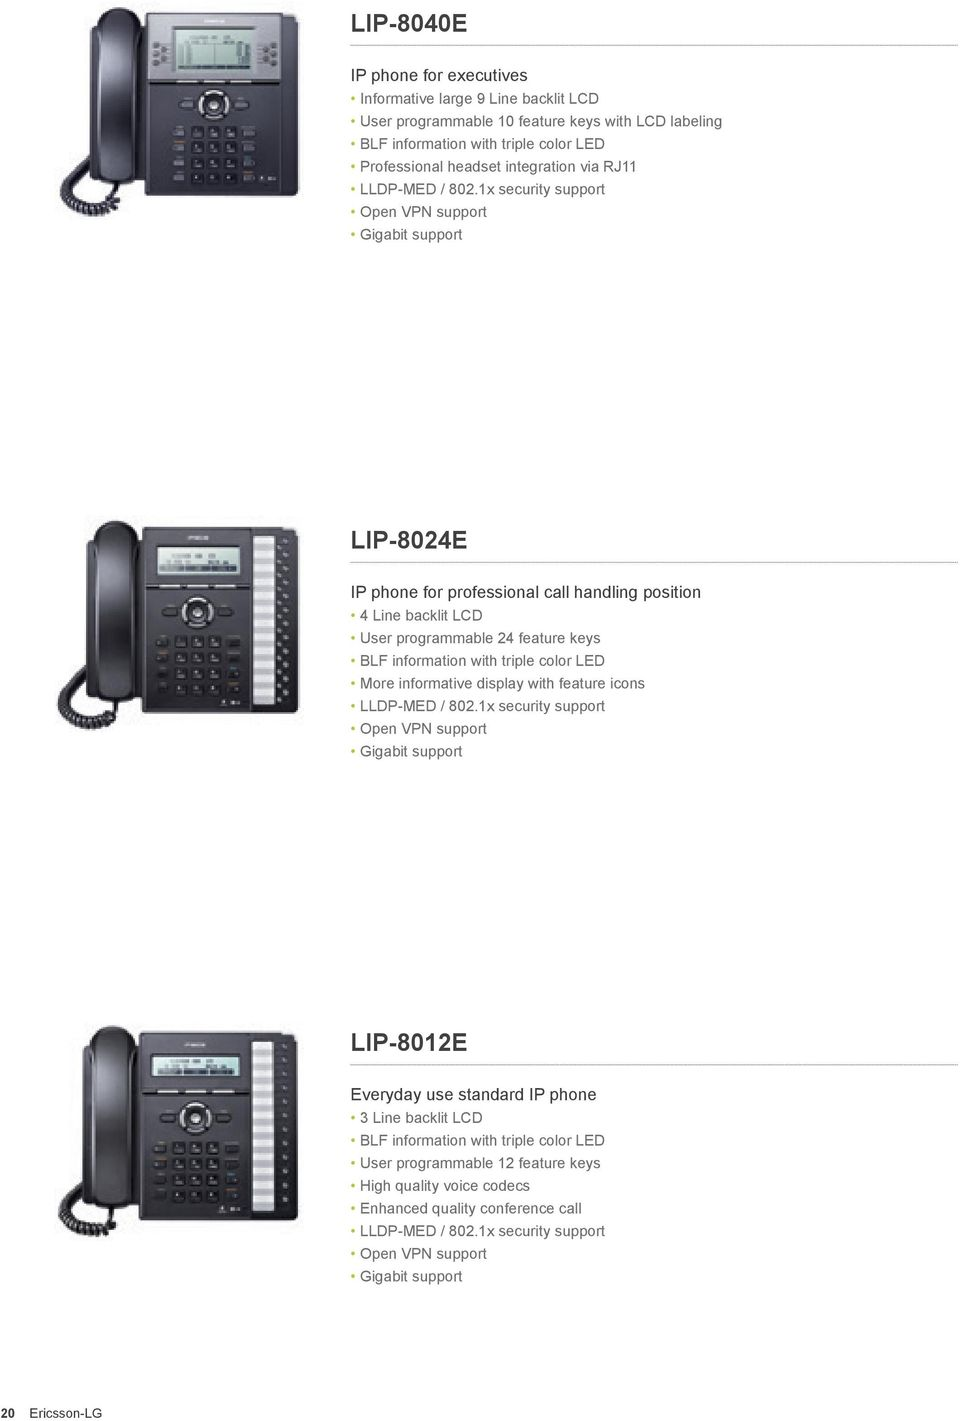 1x security support Open VPN support Gigabit support LIP-8024E IP phone for professional call handling position 4 Line backlit LCD User programmable 24 feature keys BLF information with triple color